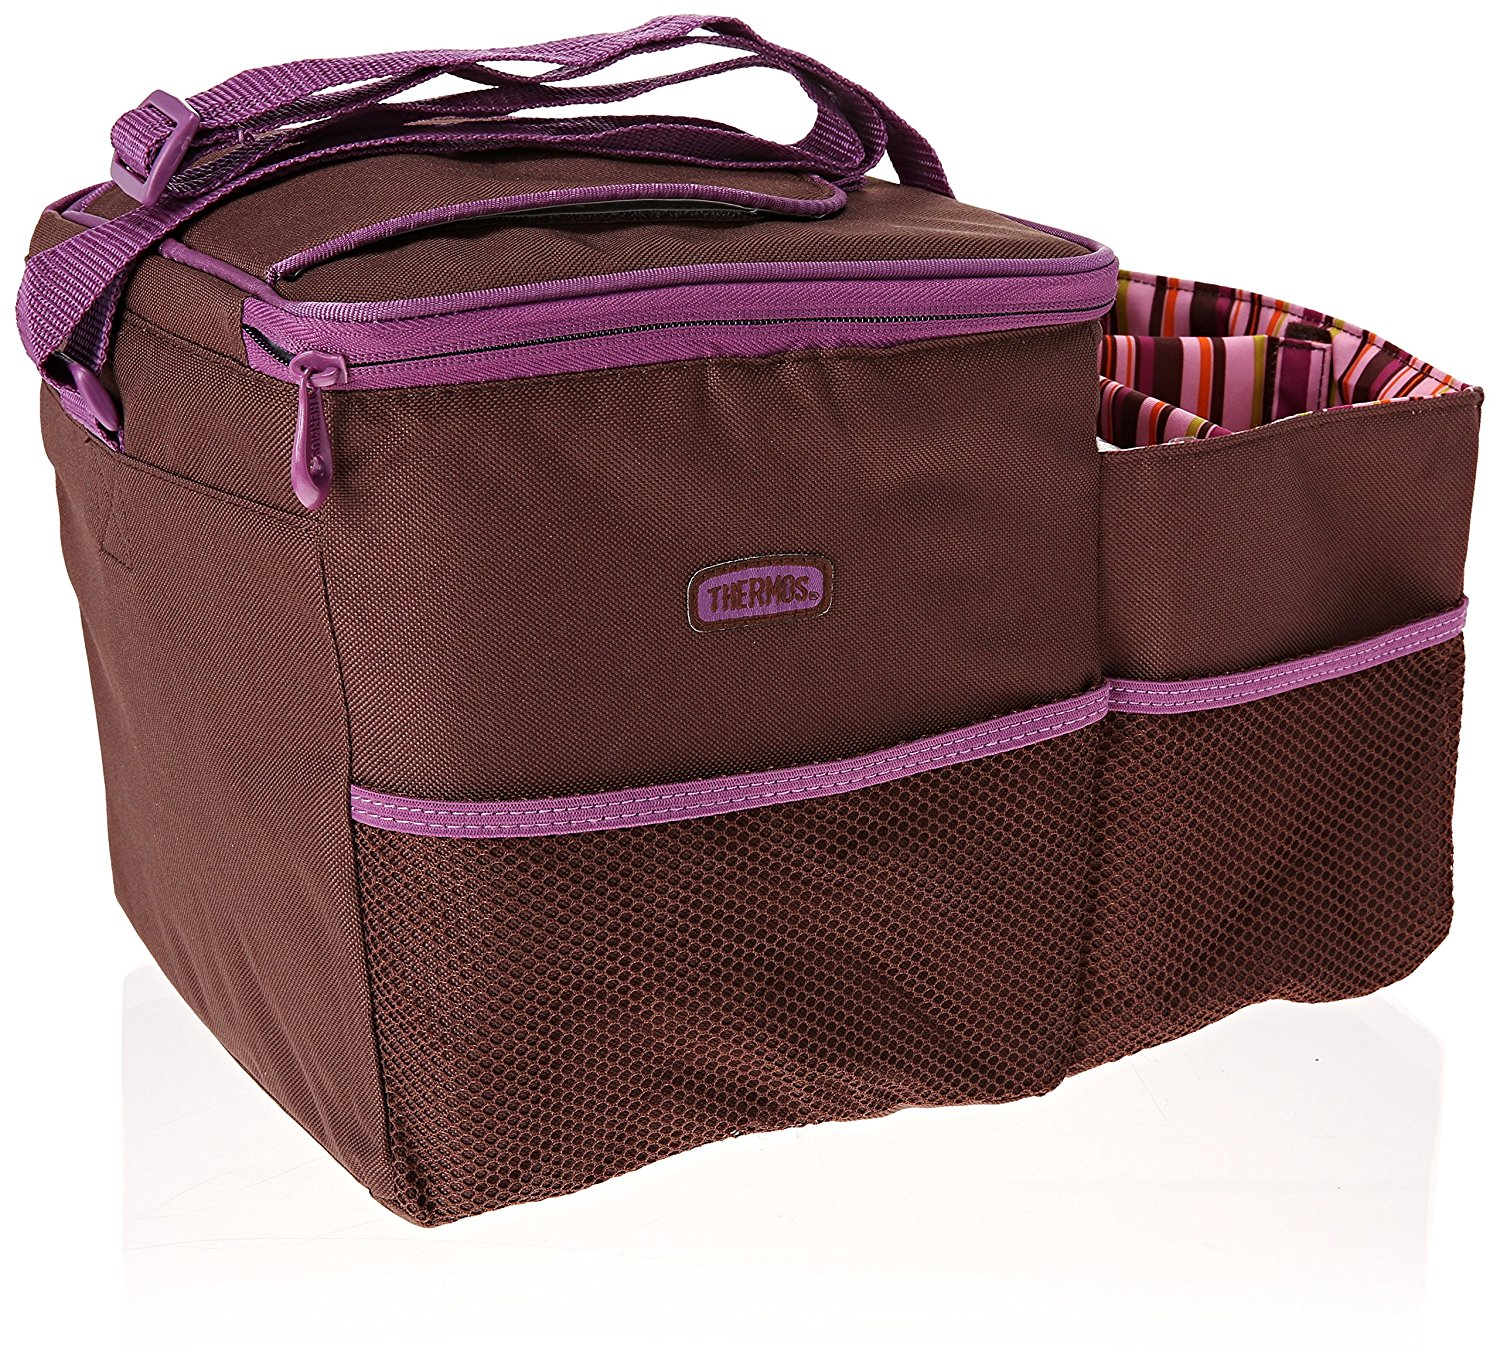 Thermos Trvl Insulated Cooler Bag Car Front Seat Organizer Brown/blue Brown/Pink (Brown/Pink)